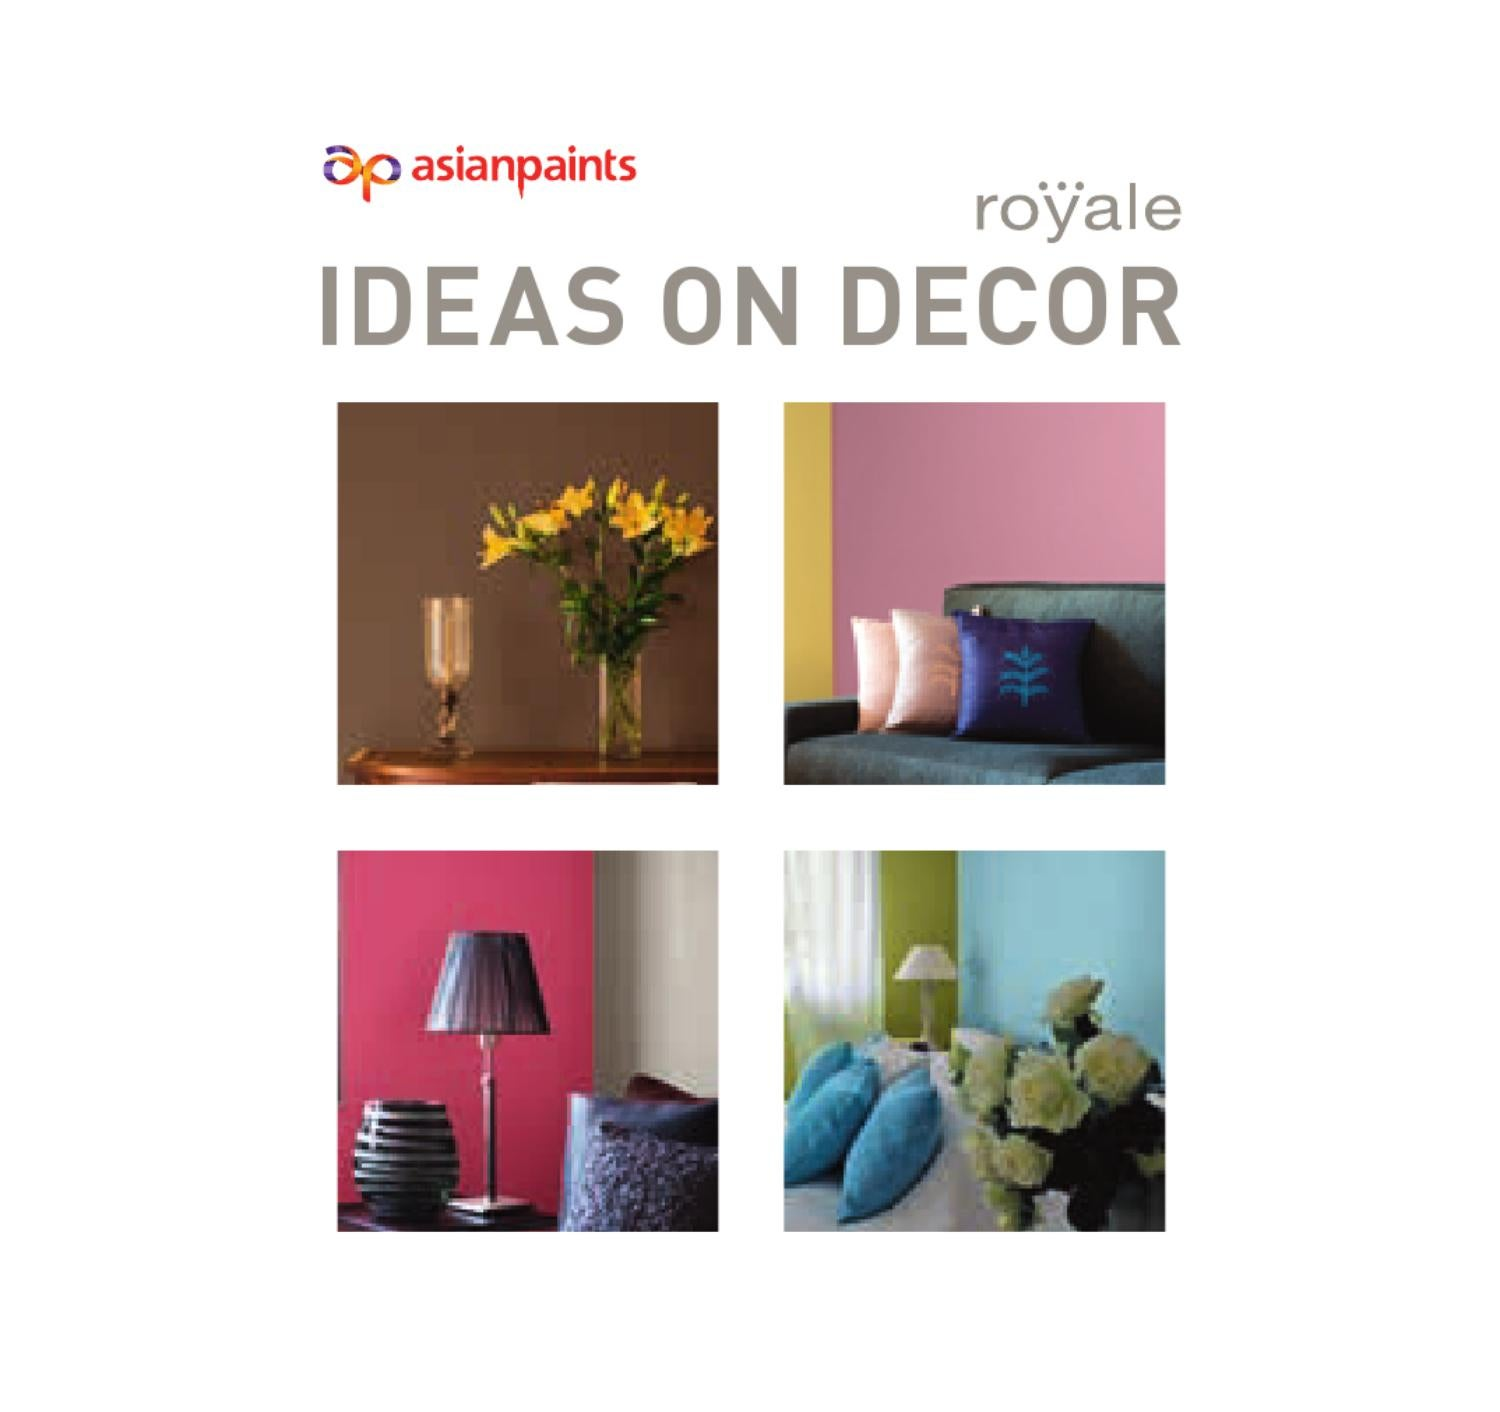 How To Paint A Bedroom Wall Issuu Ideas On Decor Book Web By Asian Paints Limited